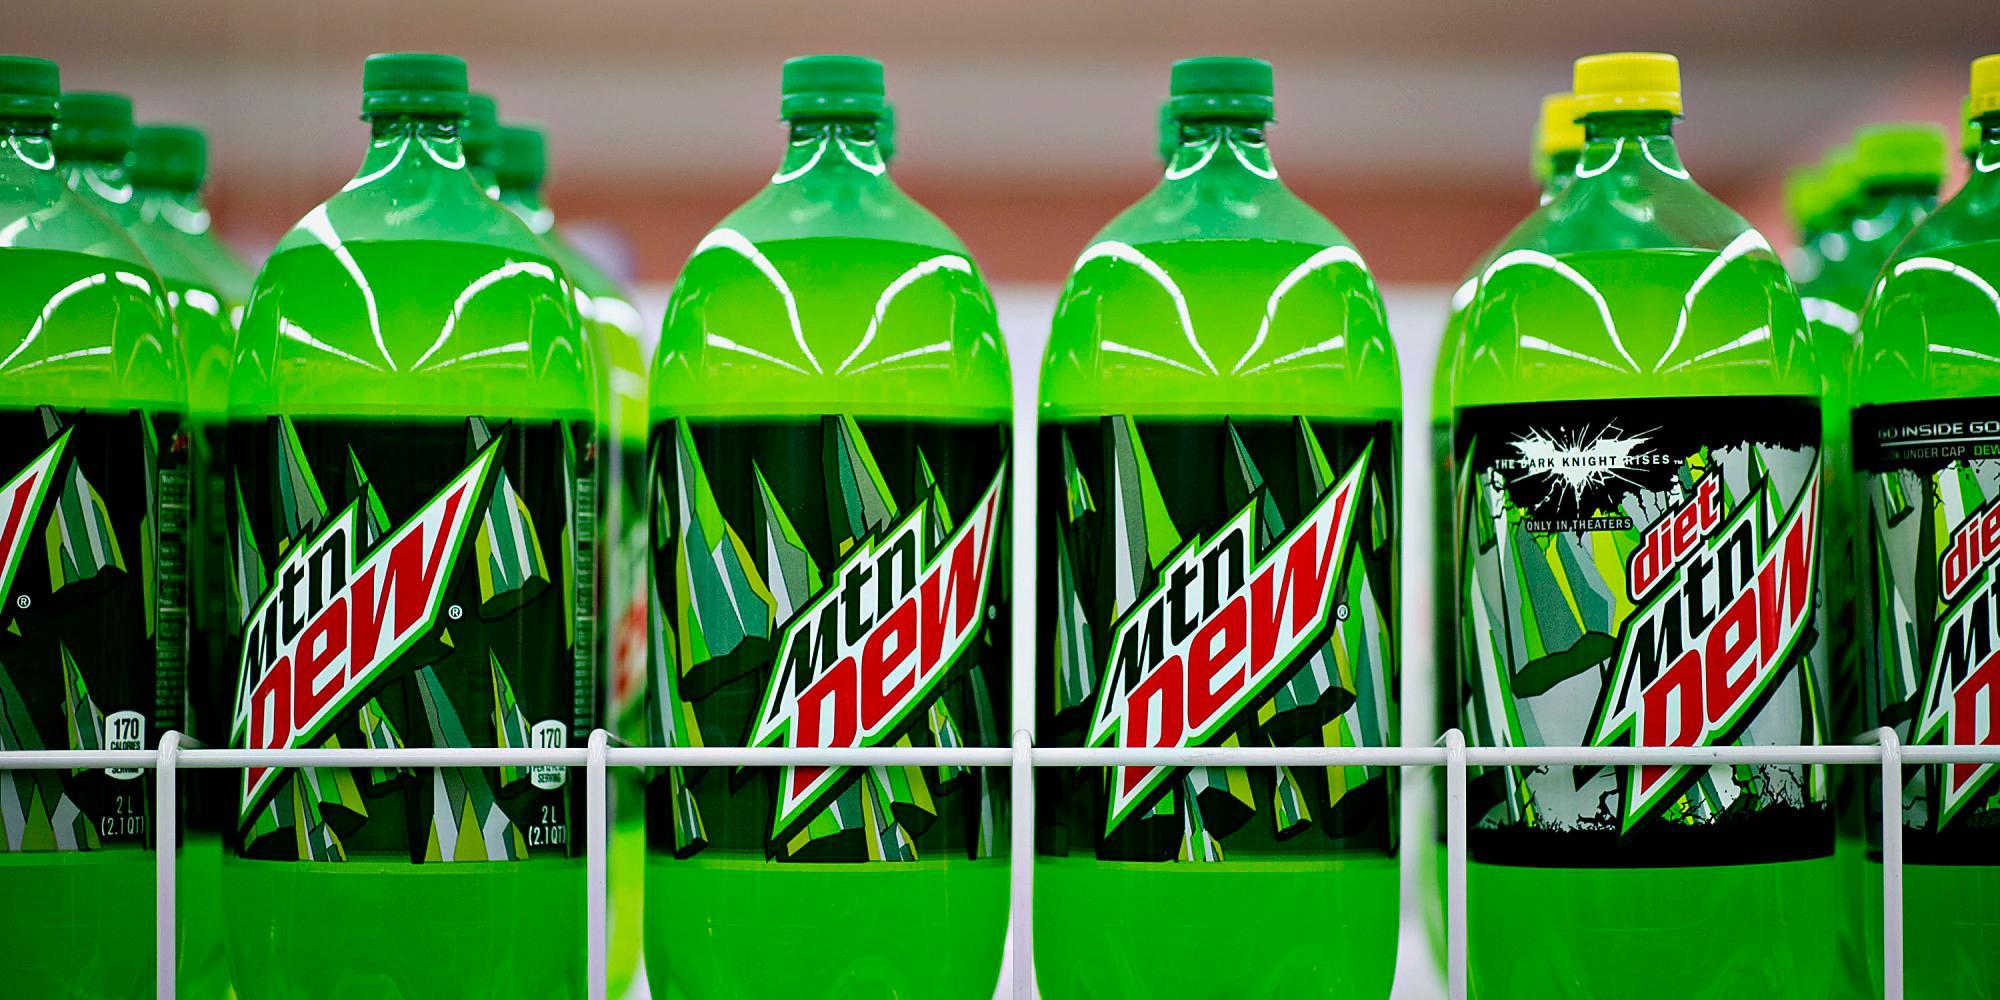 What's your favorite Mountain dew flavor?